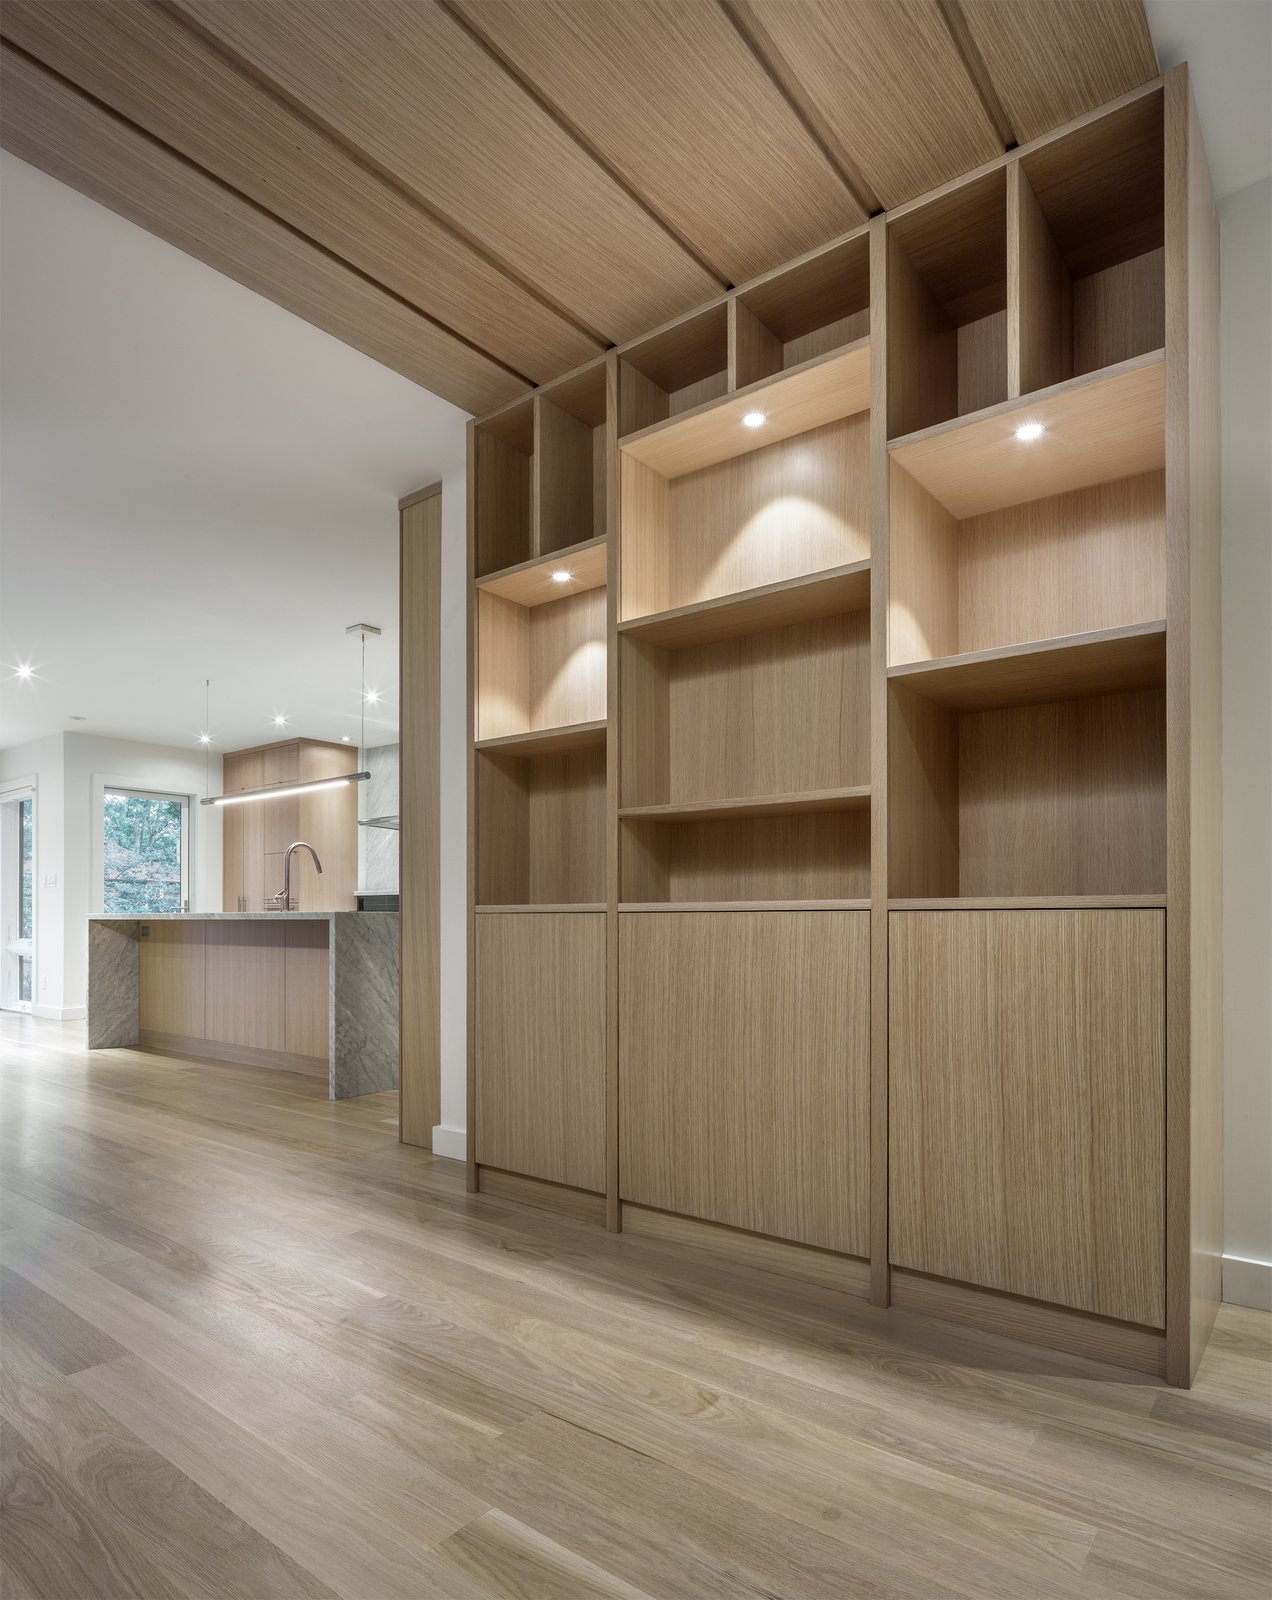 Storage Room and Cabinet Storage Type Display cabinet  North Toronto Addition by Asquith Architecture